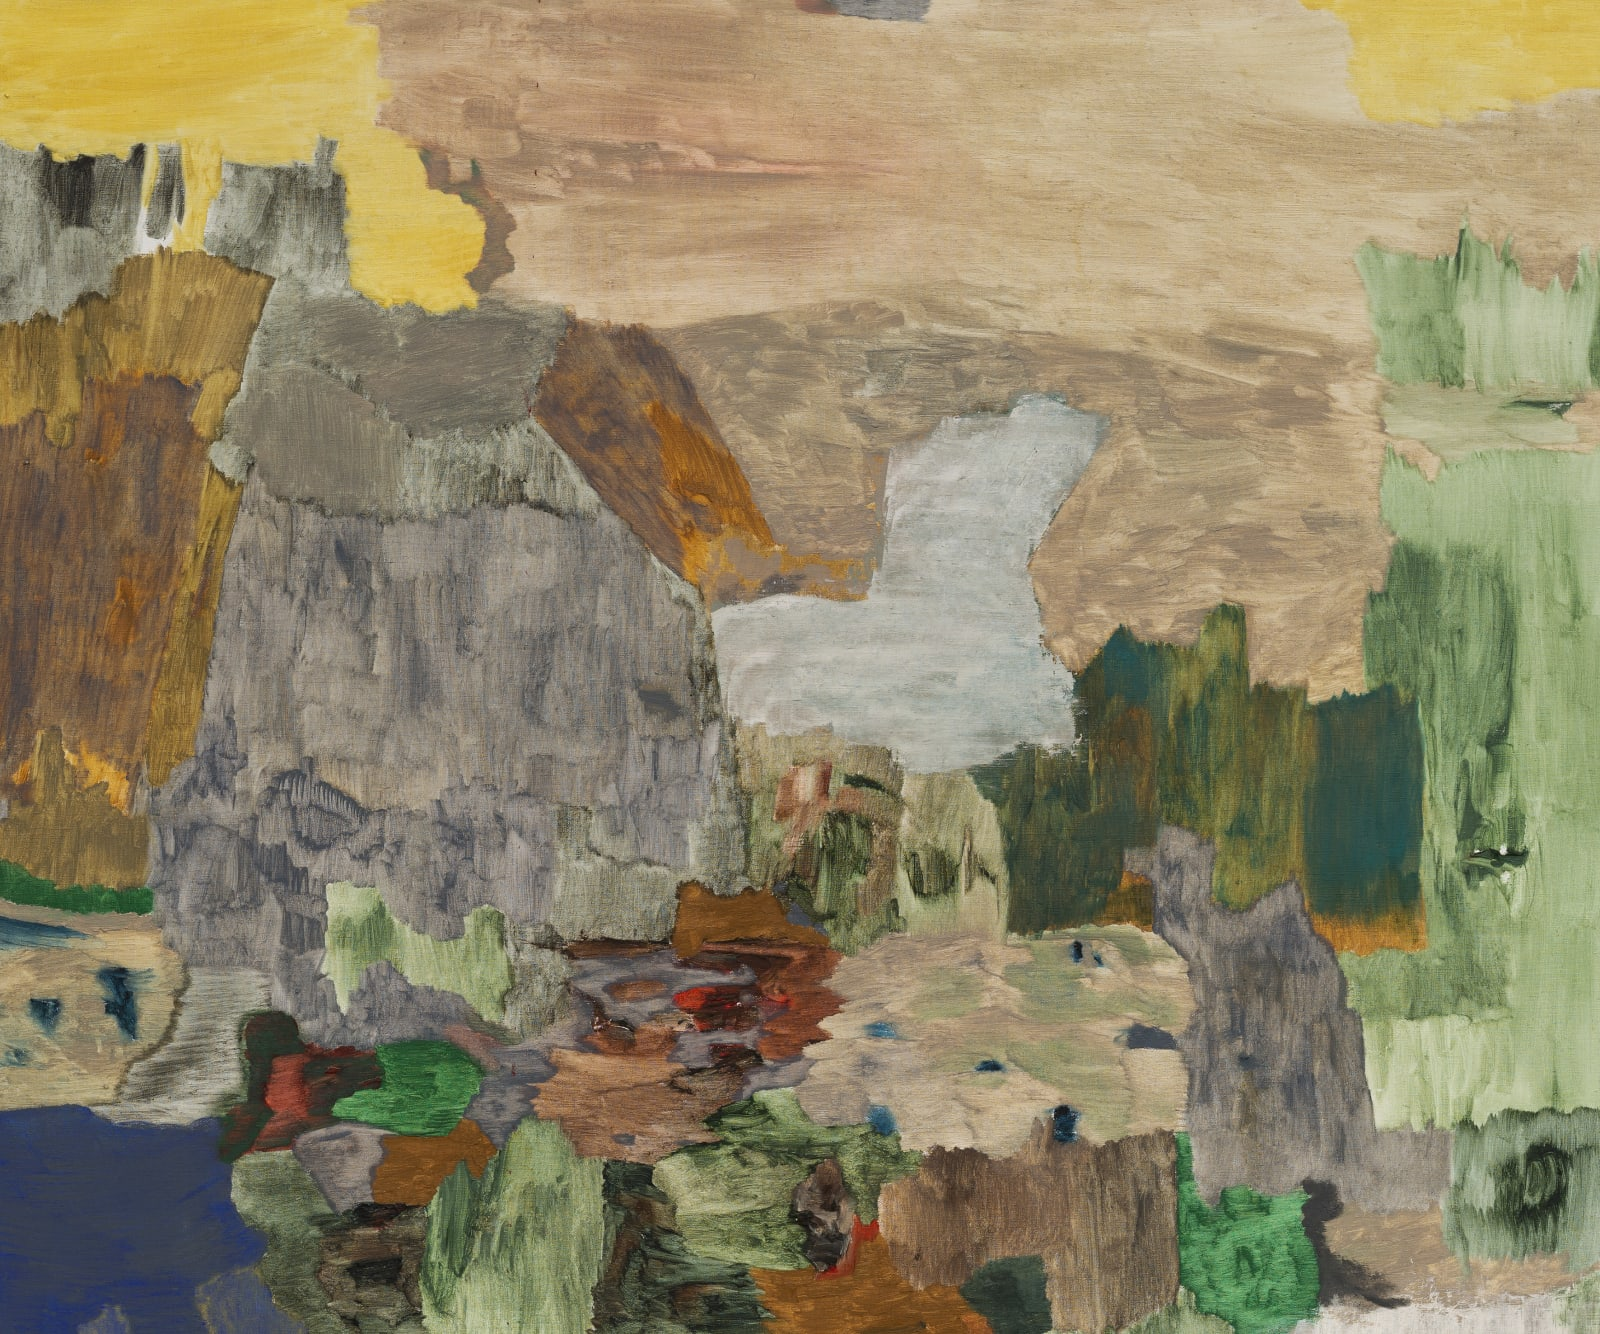 "<p>Andreas Eriksson, <em>Passage</em>, 2017 - 2020. Detail.</p><h3>""Territories of the finished tapestries might be distinguished by a particular knotted texture or the stands of long fibre sprouting from the surface. Andreas has described the tapestries as 'existential landscapes'. We might also see them as a conceptual extension of painting in which the picture migrates to the canvas itself."" </h3><p><strong>- Hettie Judah on Andreas Eriksson, 2020</strong></p>"